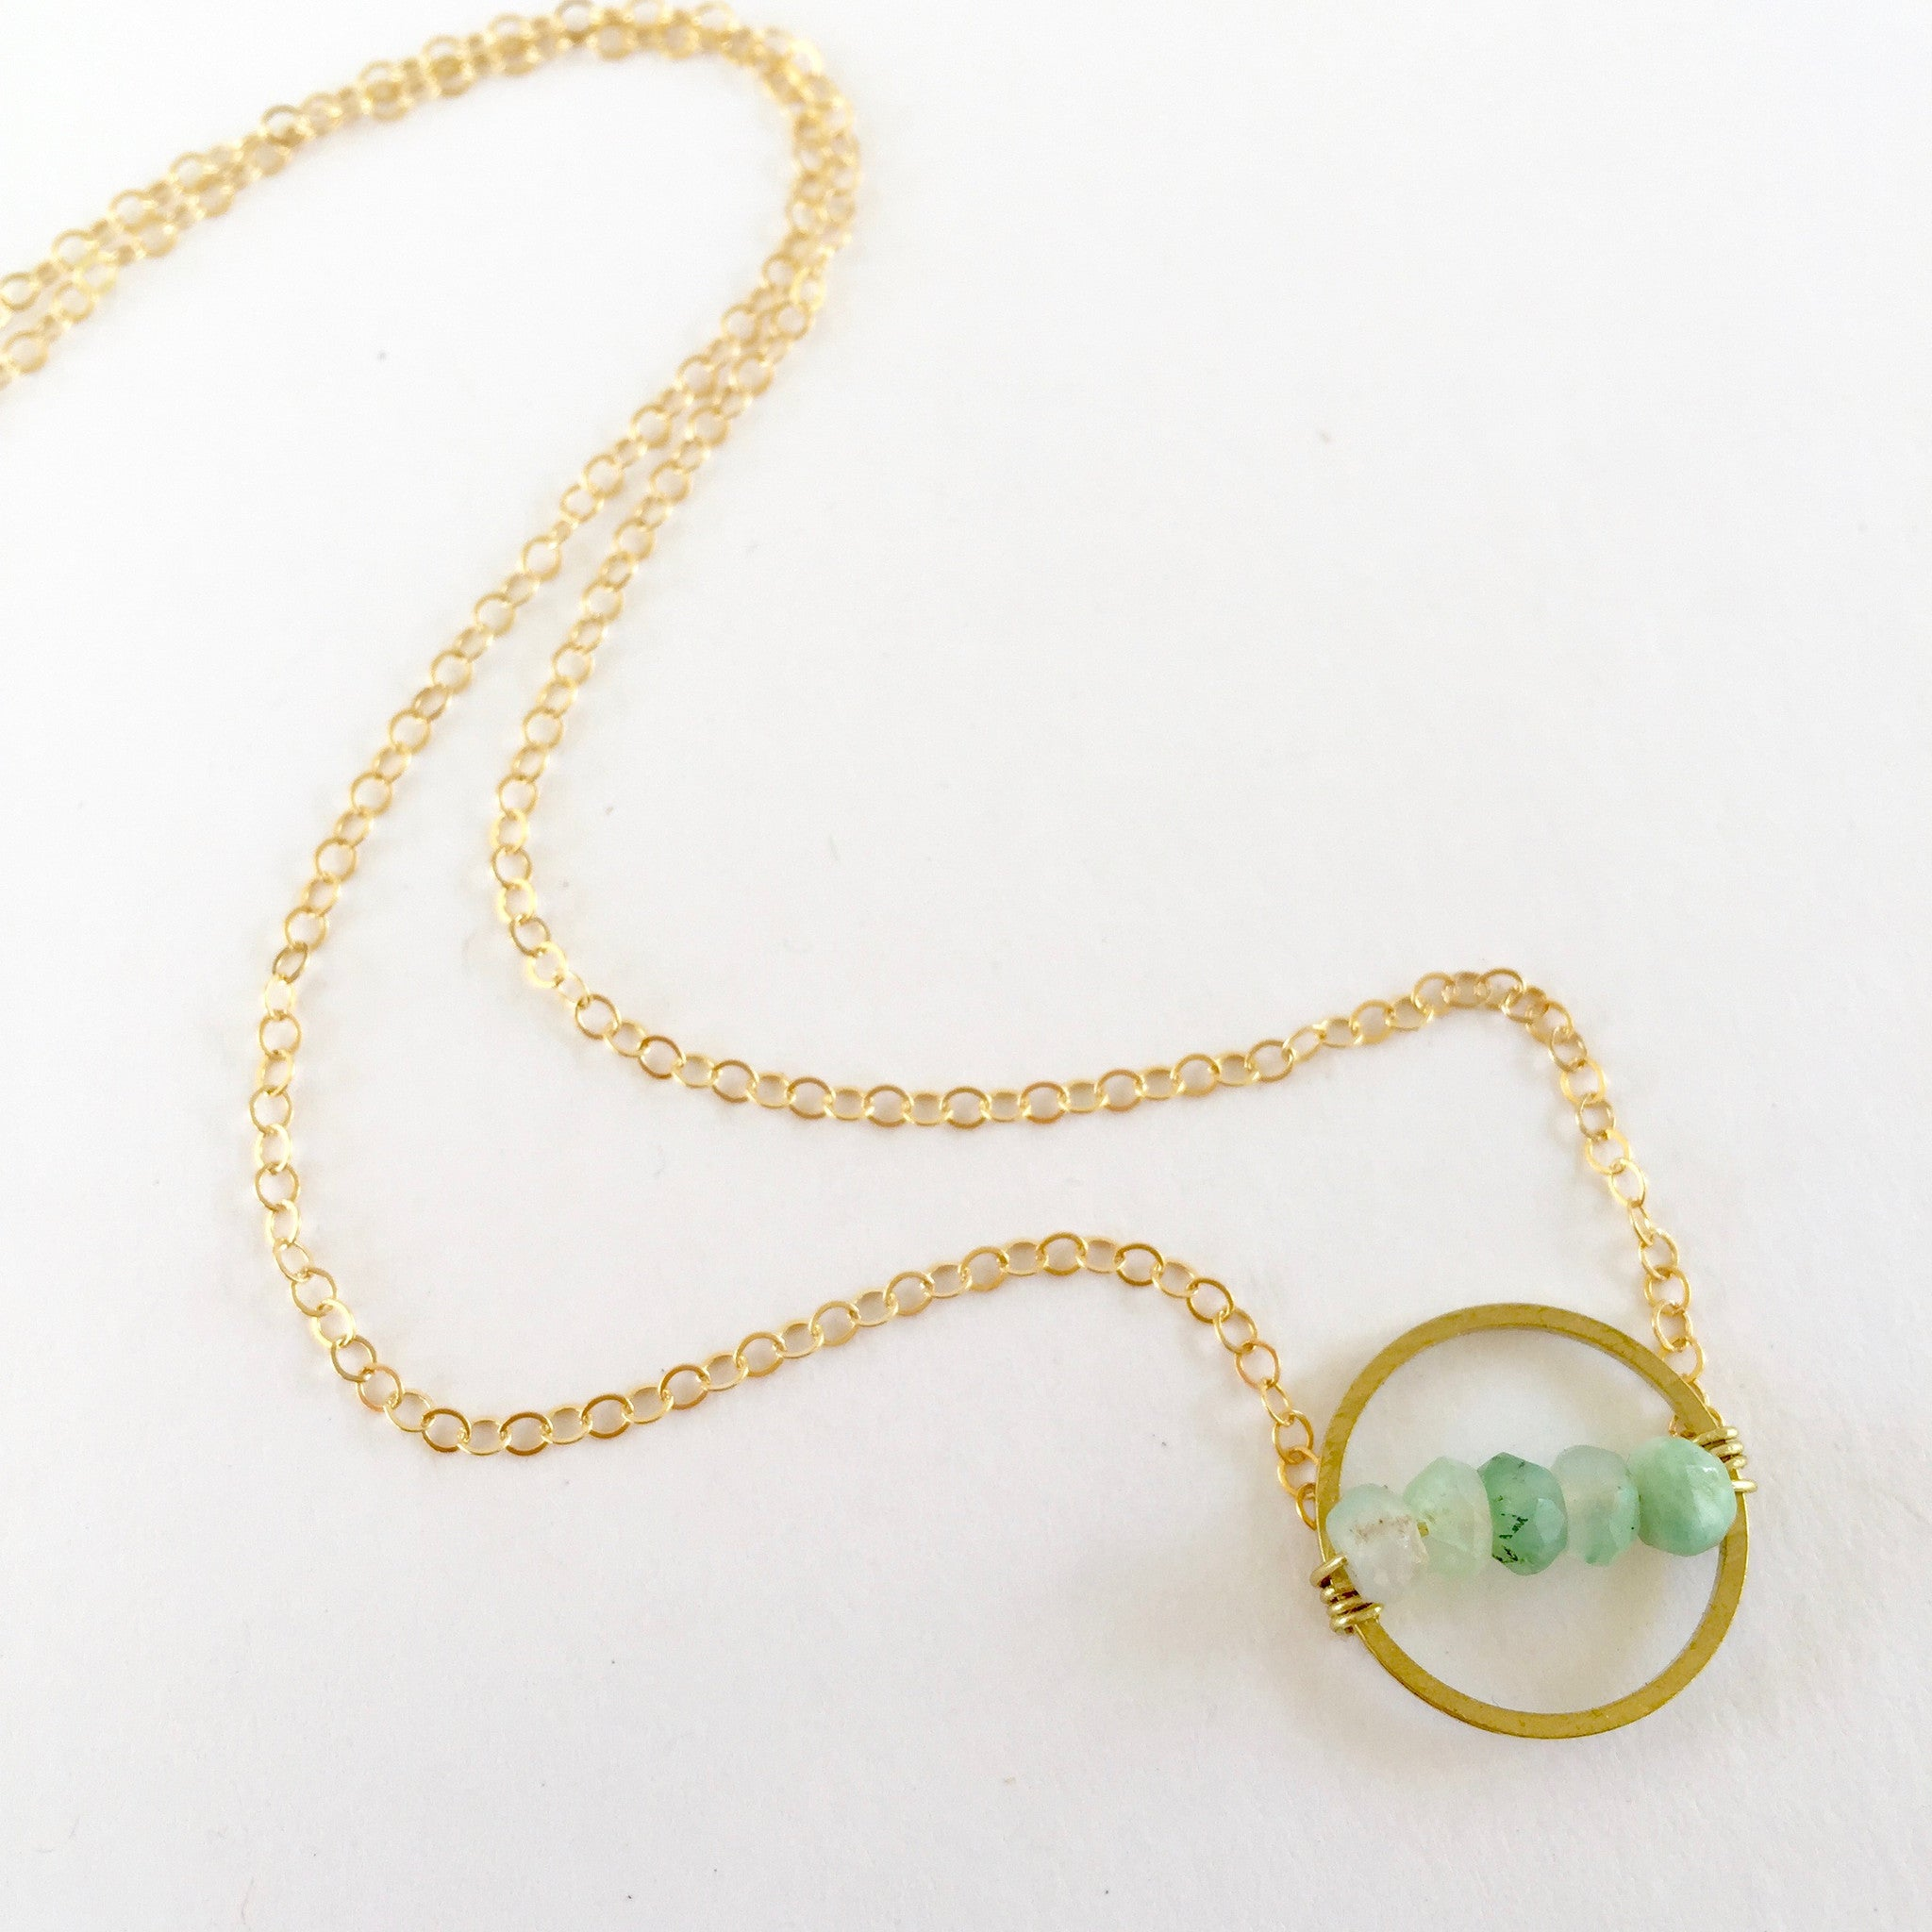 Layton Necklace in Chrysoprase